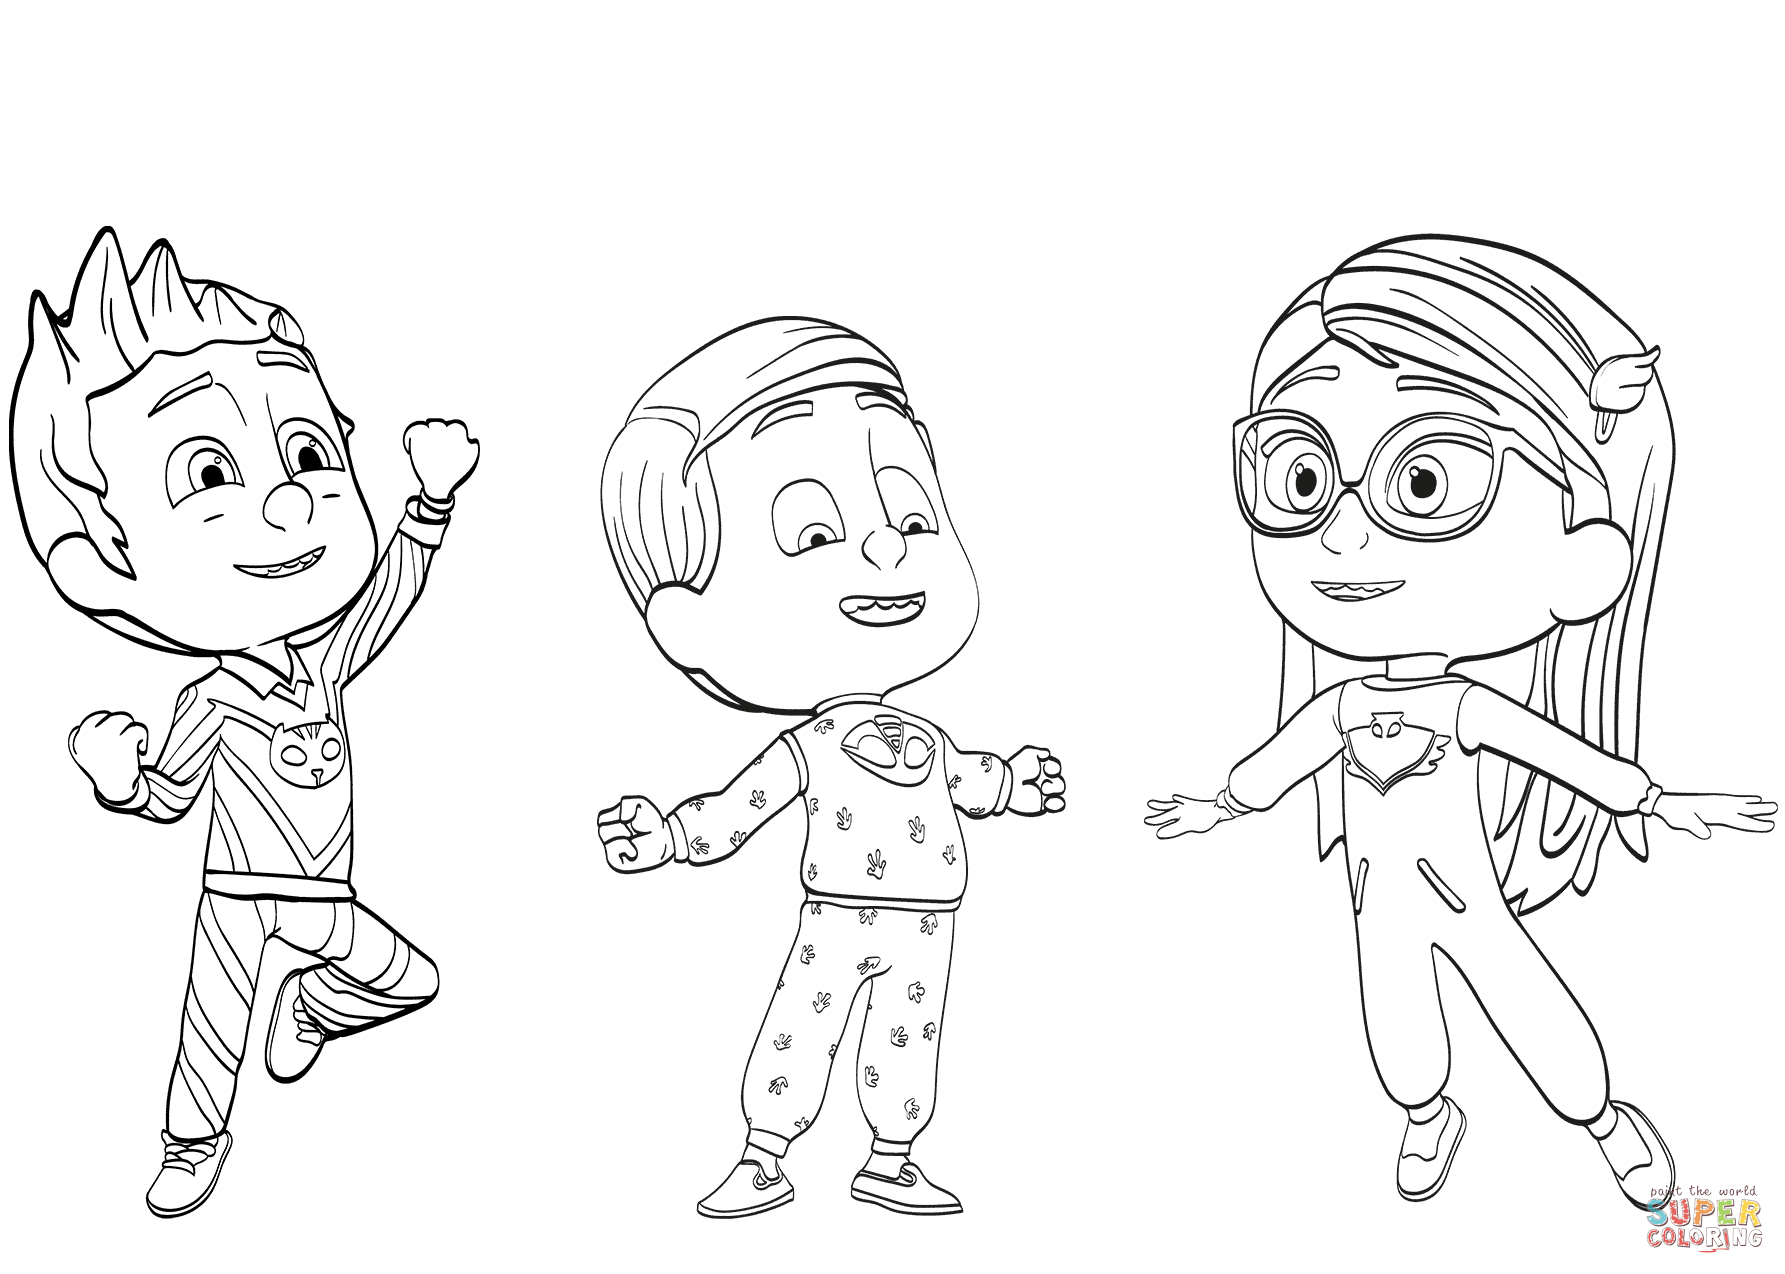 Pj Masks Pajama Heroes Coloring Page | Free Printable Coloring Pages - Free Printable Pajama Coloring Pages